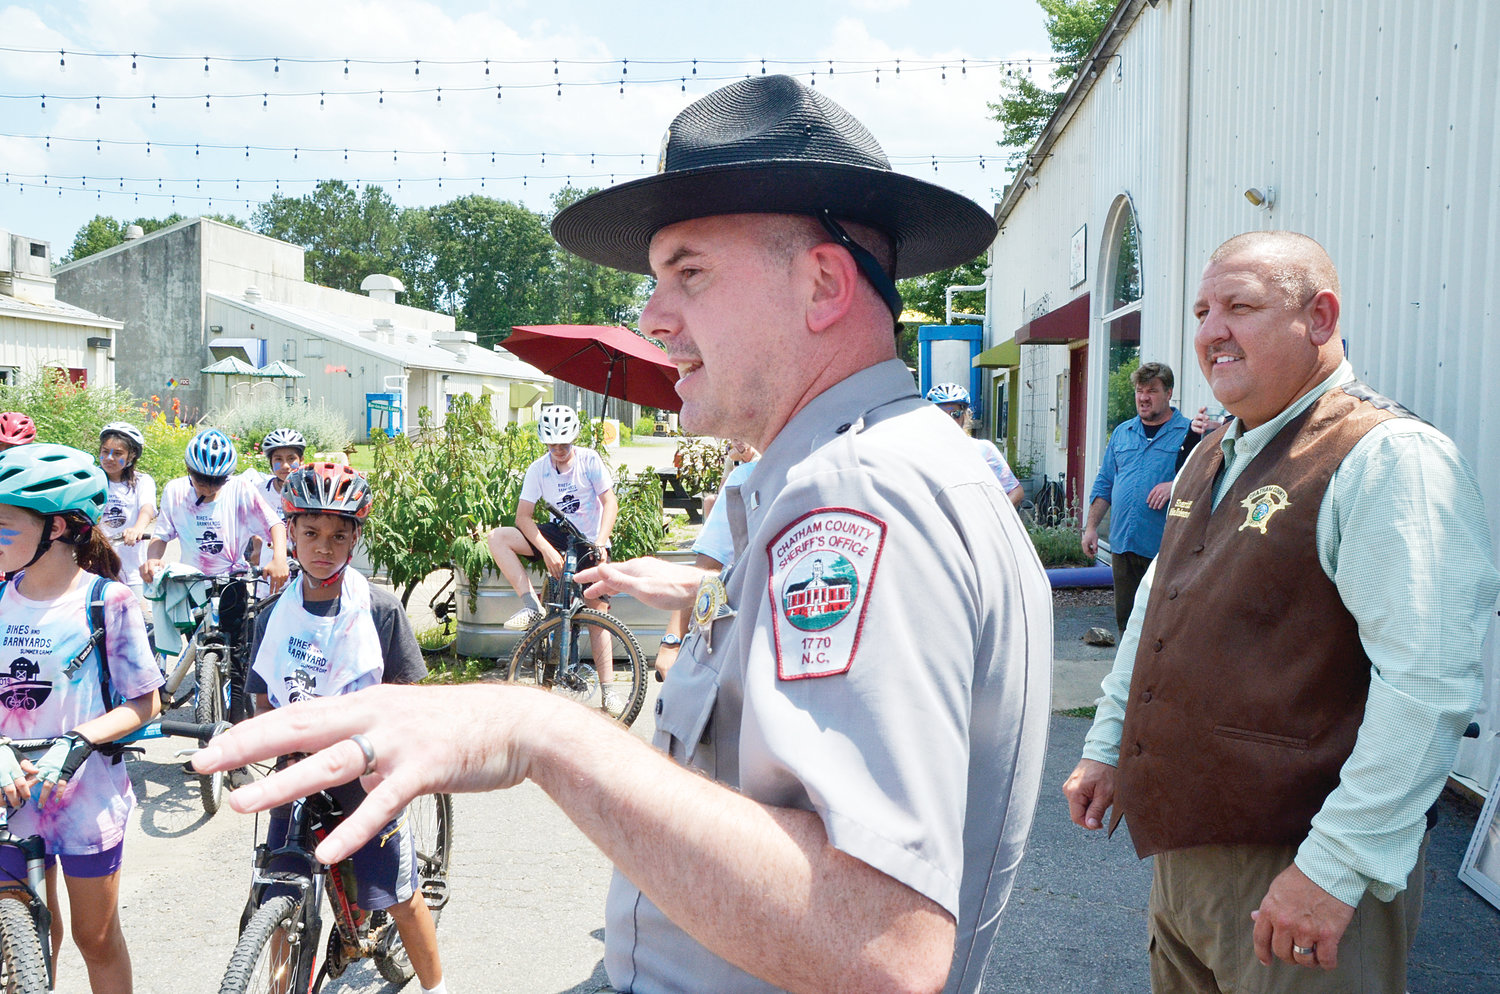 Chatham County Sheriff's Deputy Brandon Jones shares safety tips for the Bikes and Barnyards campers as Sheriff Mike Roberson, right, looks on. The bikers took a few minutes Thursday in the Chatham Beverage District courtyard to get final instructions before heading to Jordan Lake.